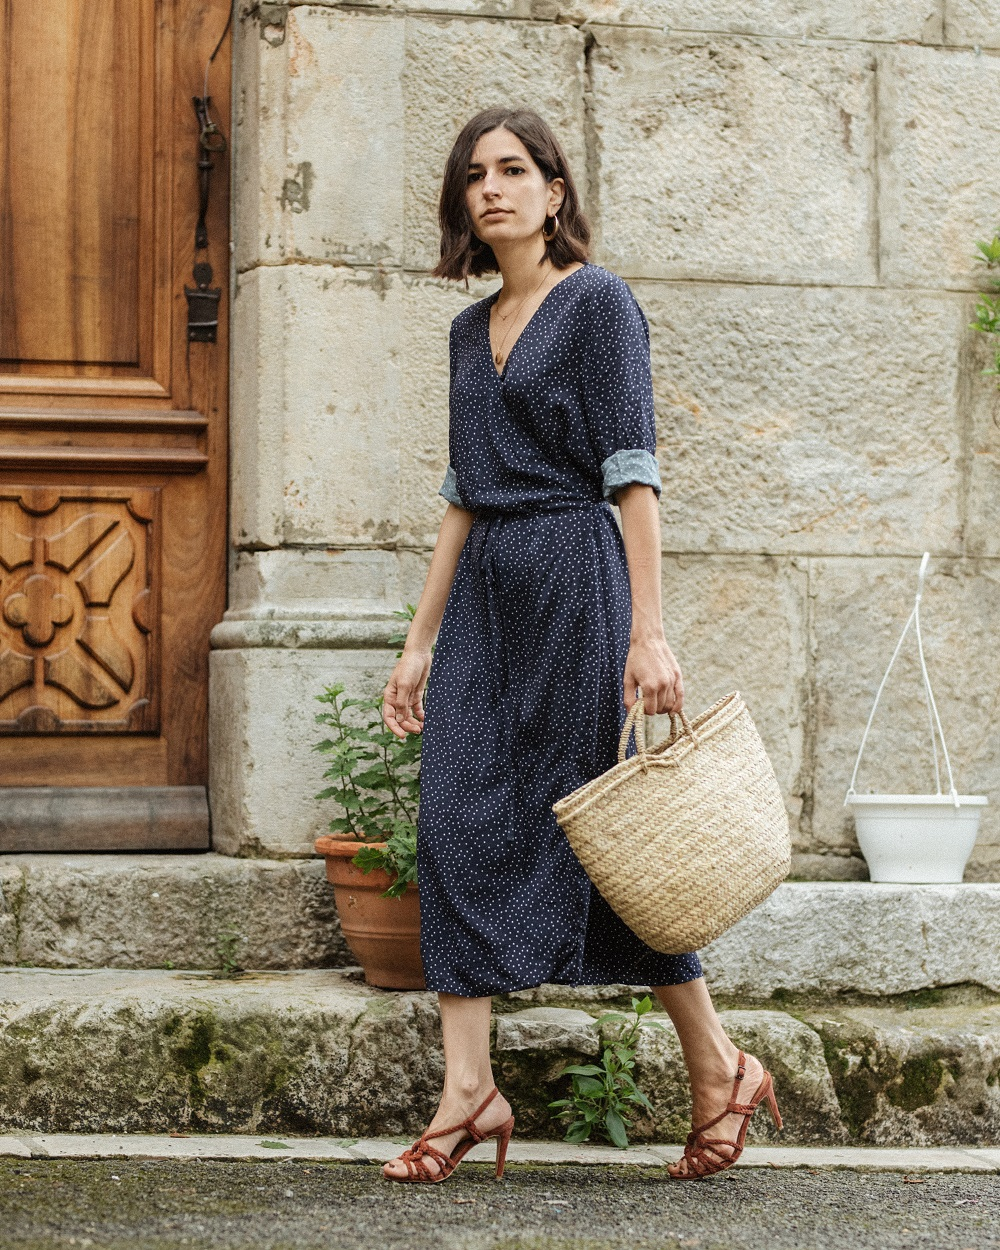 The perfect polka dot wrap dress for summer